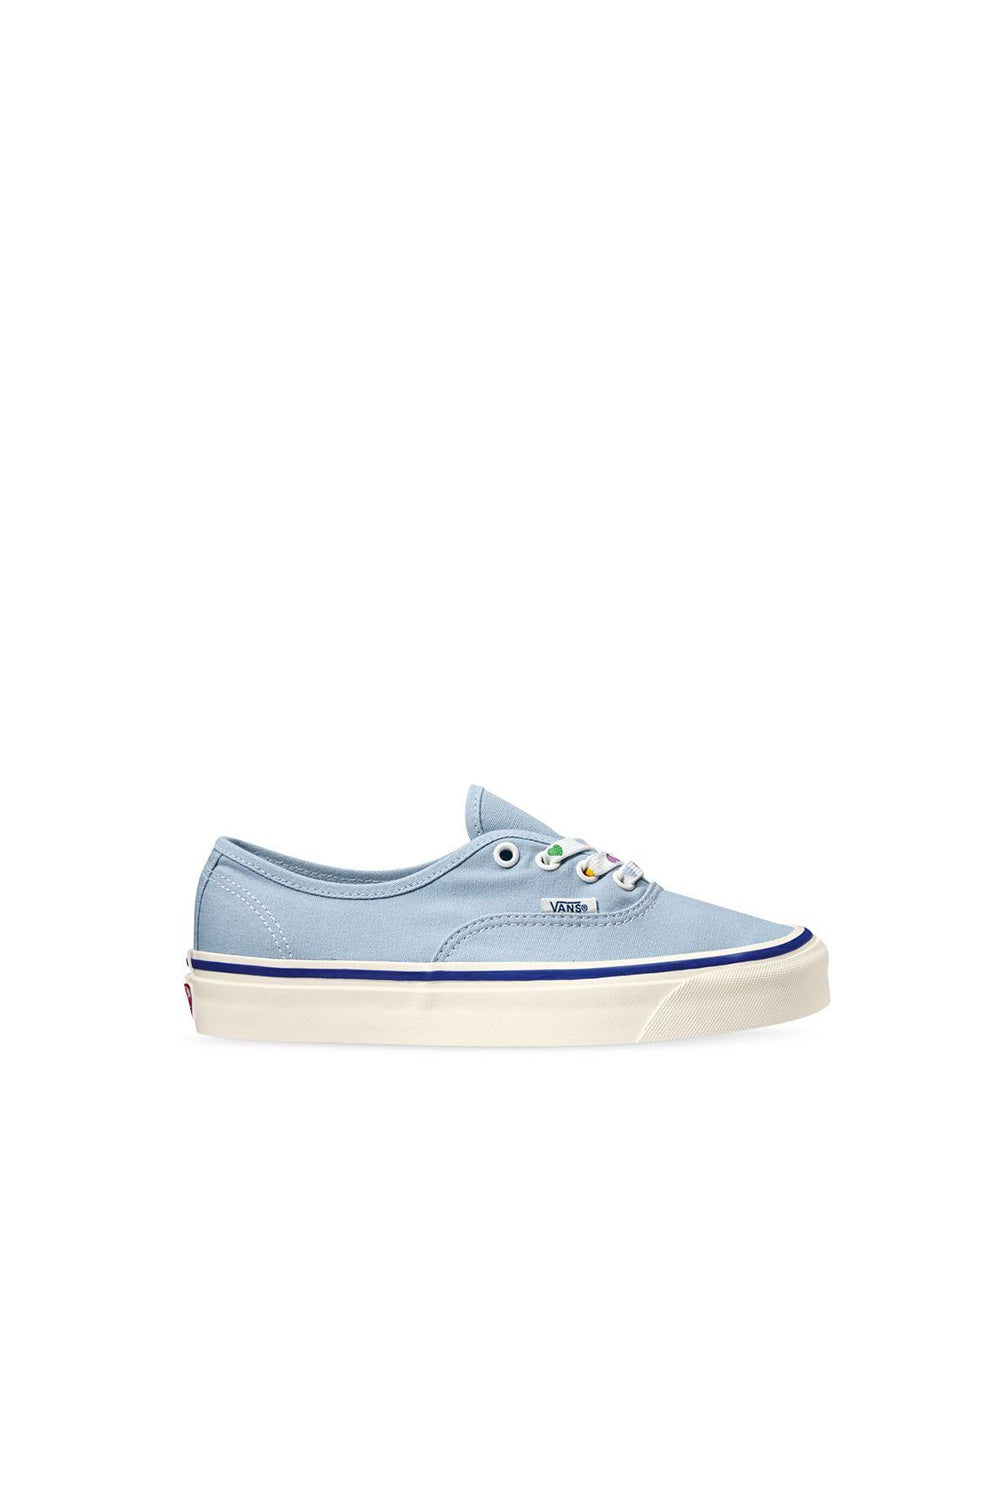 Vans Authentic 44 DX Anaheim Factory OG Light Blue